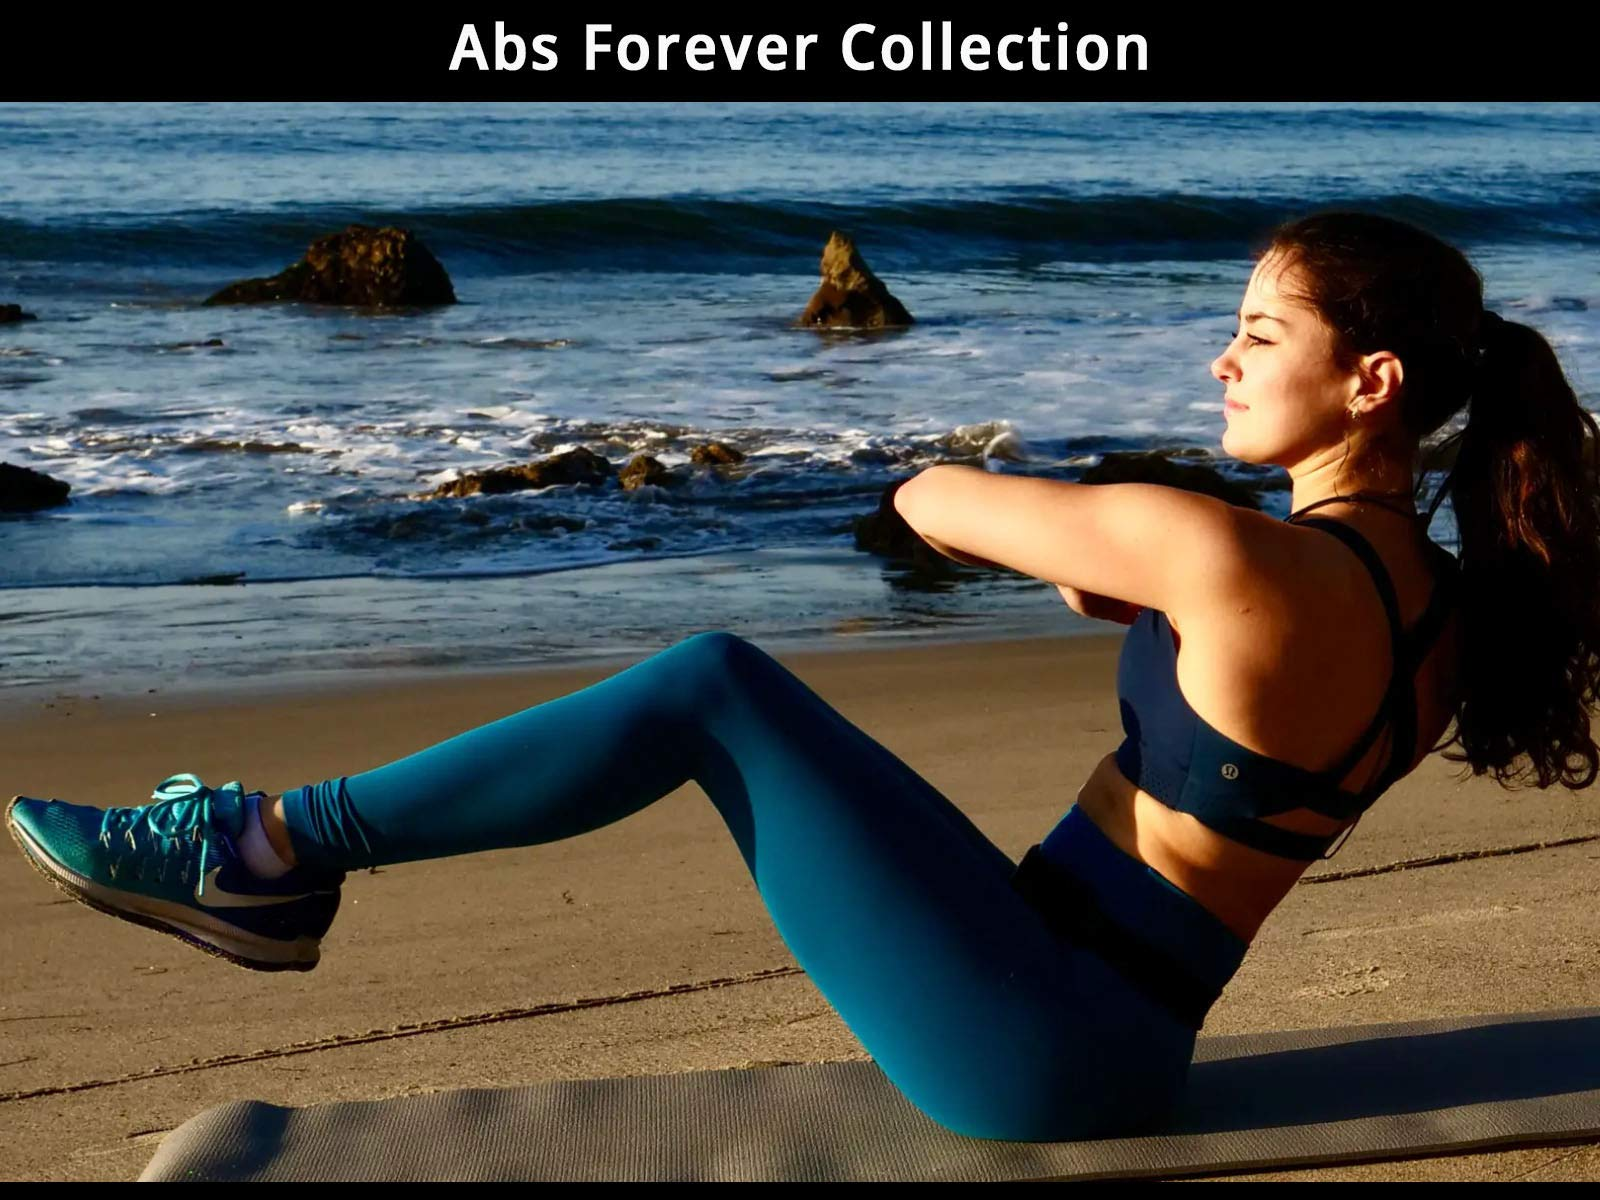 Abs Forever Collection - Season 1